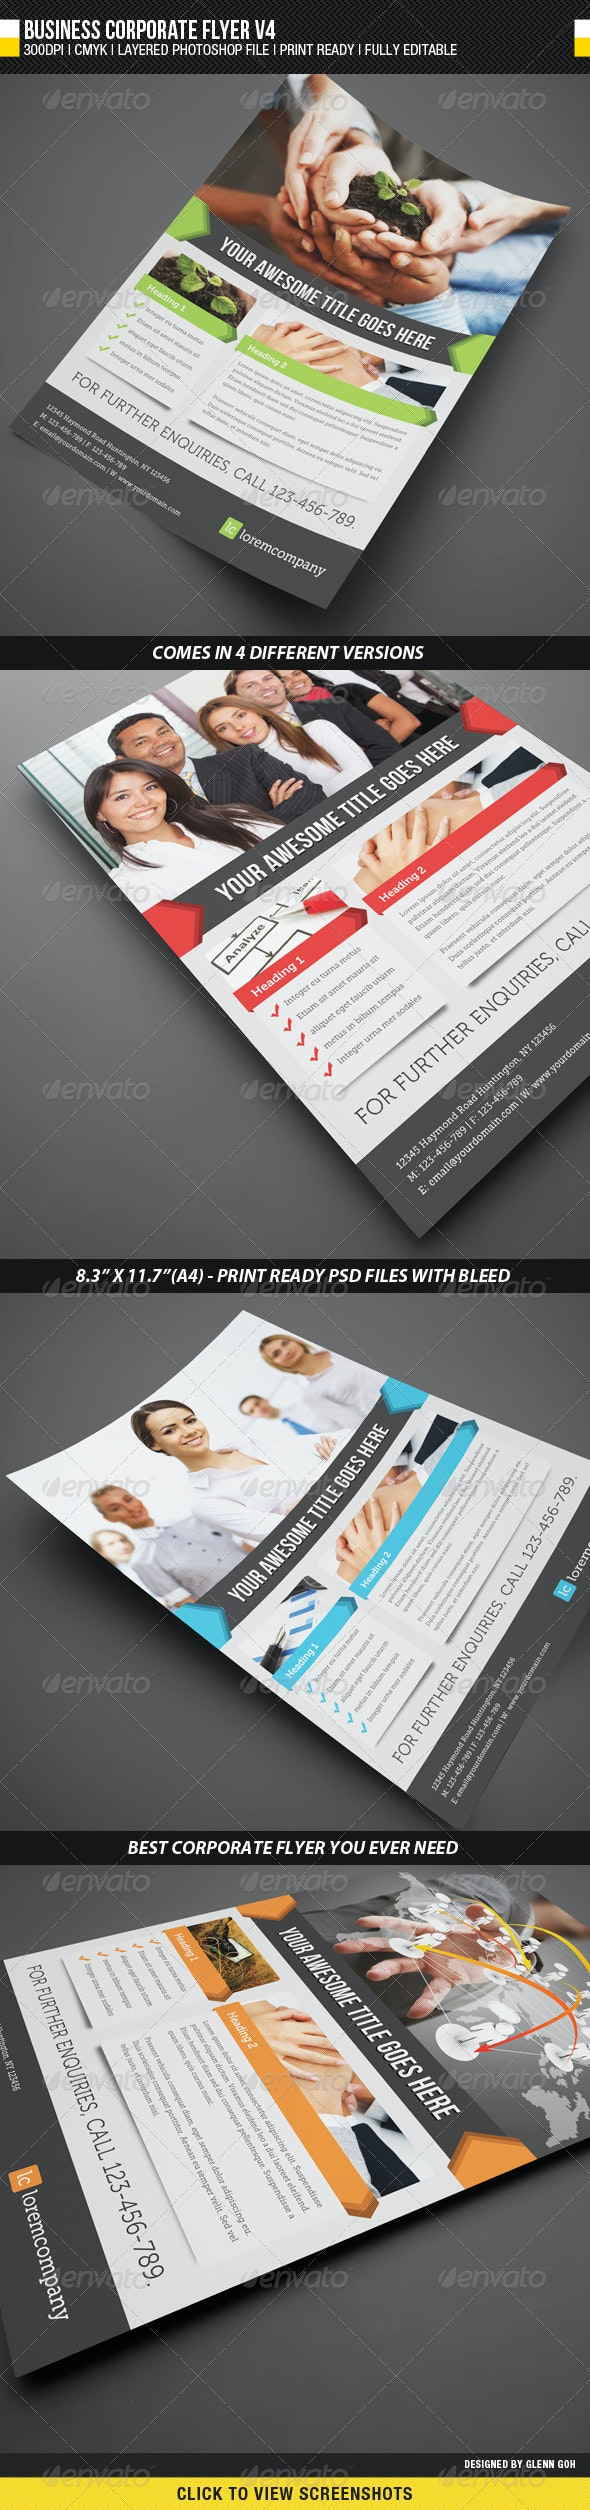 Business Corporate Flyer V4 - Corporate Flyers